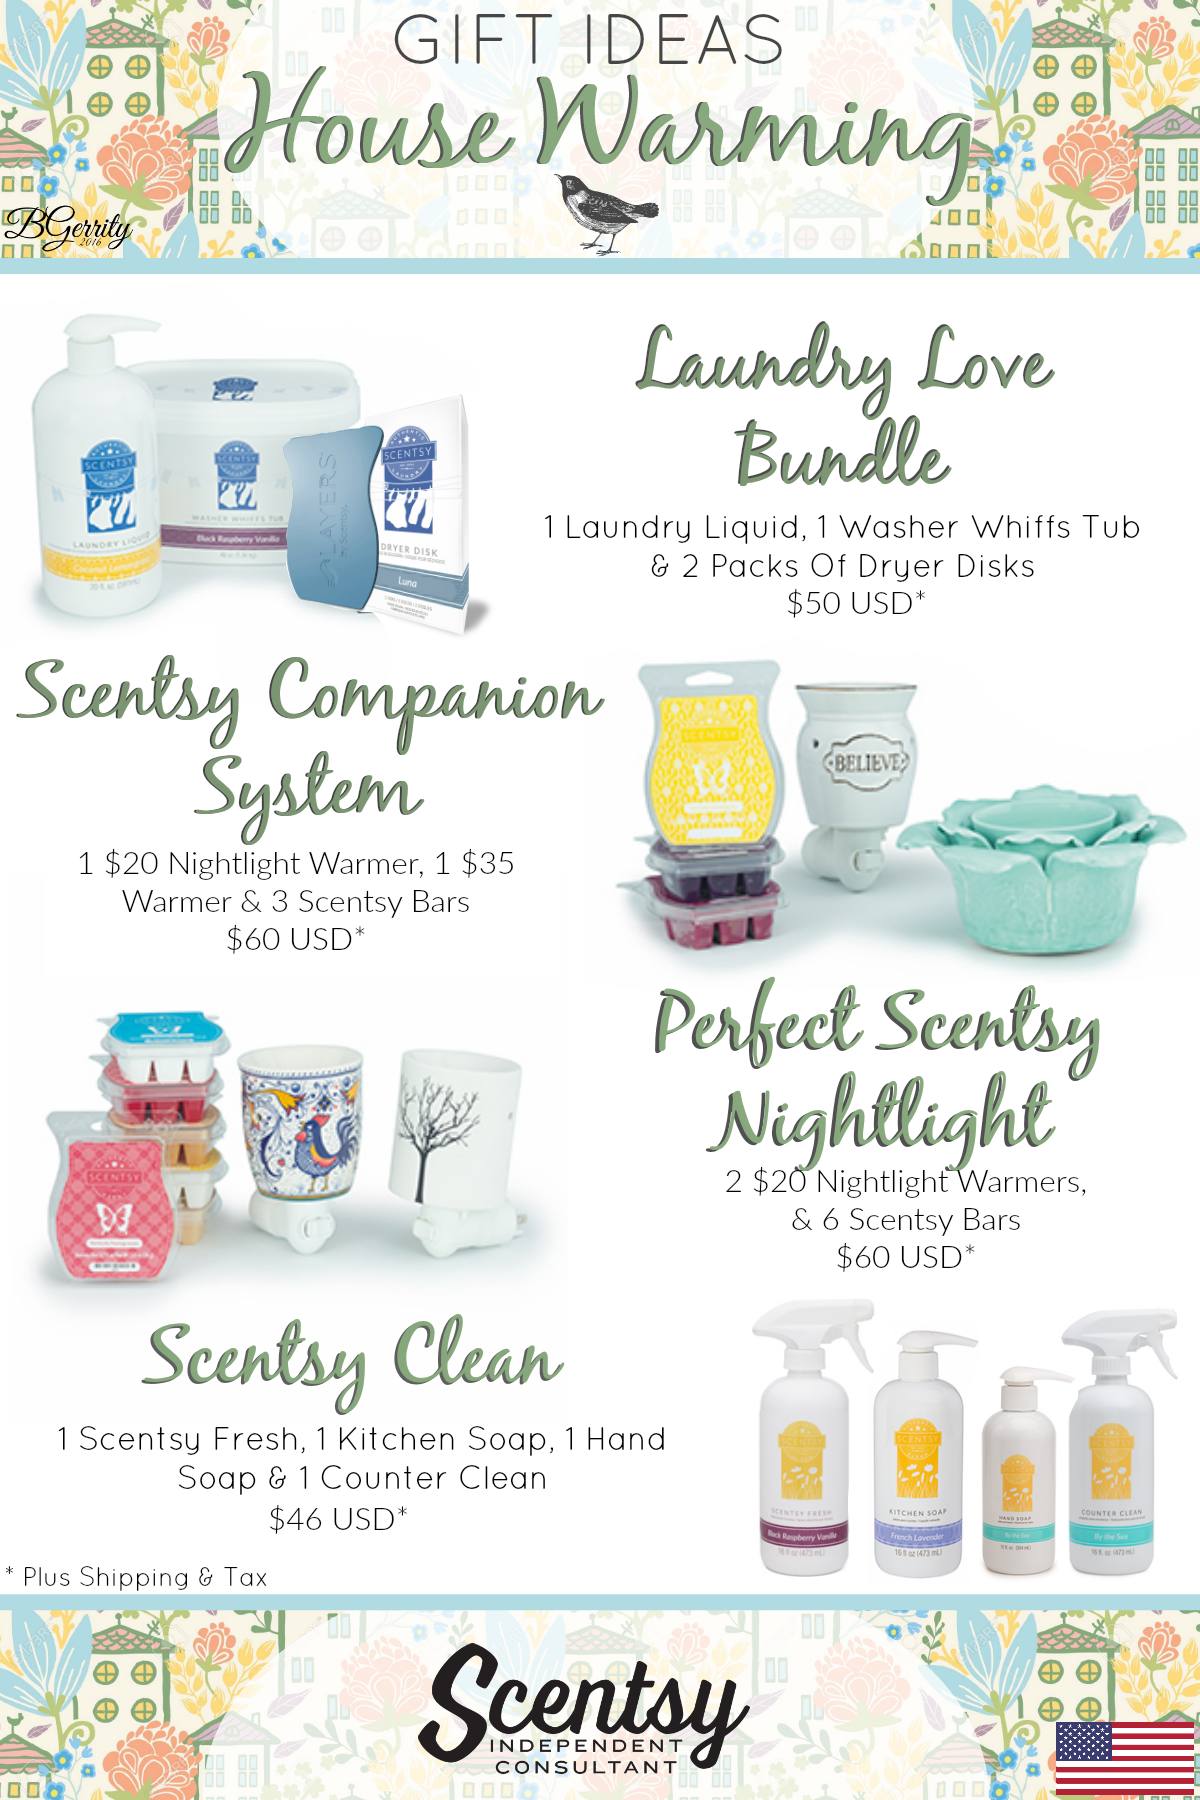 SCENTSY - House Warming Gift Ideas (USD) FLYER CREATED BY BRITTANY ...